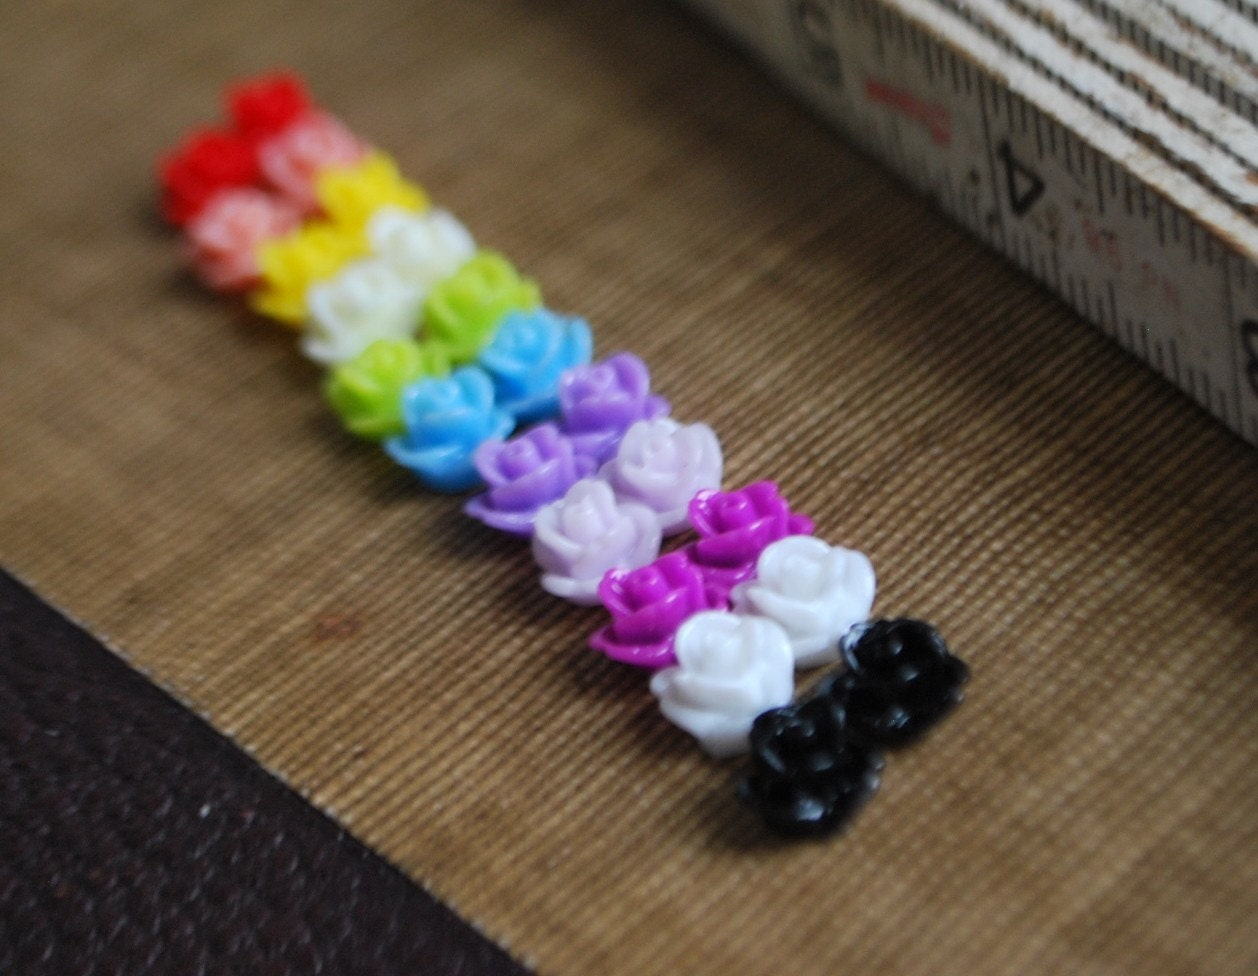 22 Teeny Tiny Rose Flower Flat Back Plastic Cabochons - Sample Pack - Multi Color - 8.5mm - MIX A